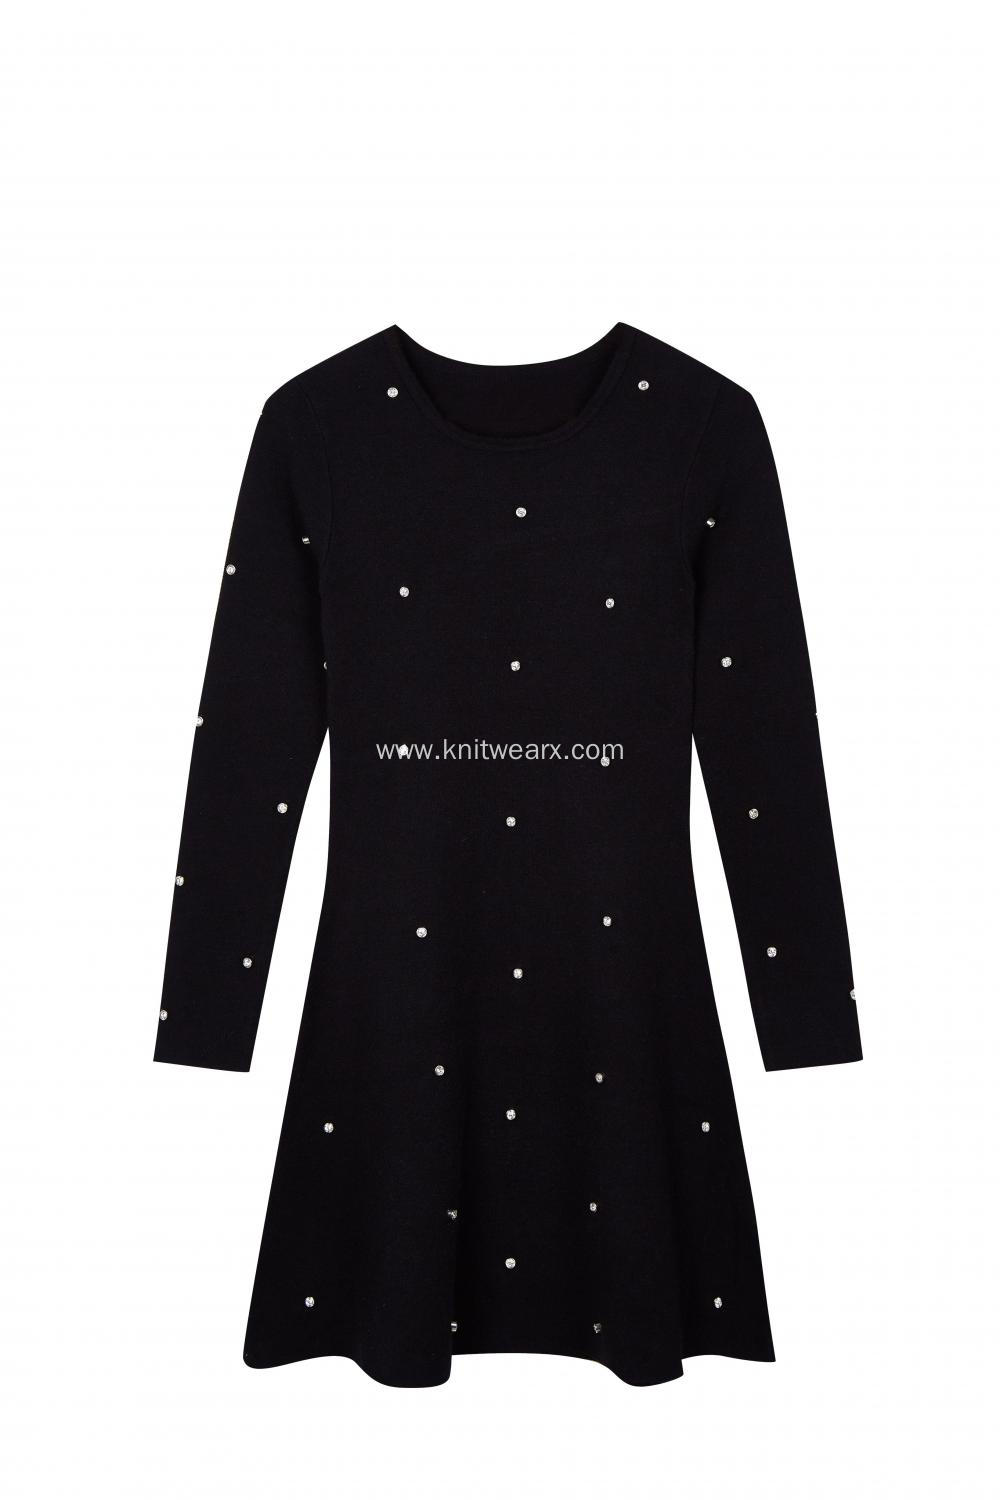 Women's Knitted Crew-Neck Crystal button Midi Party Dress